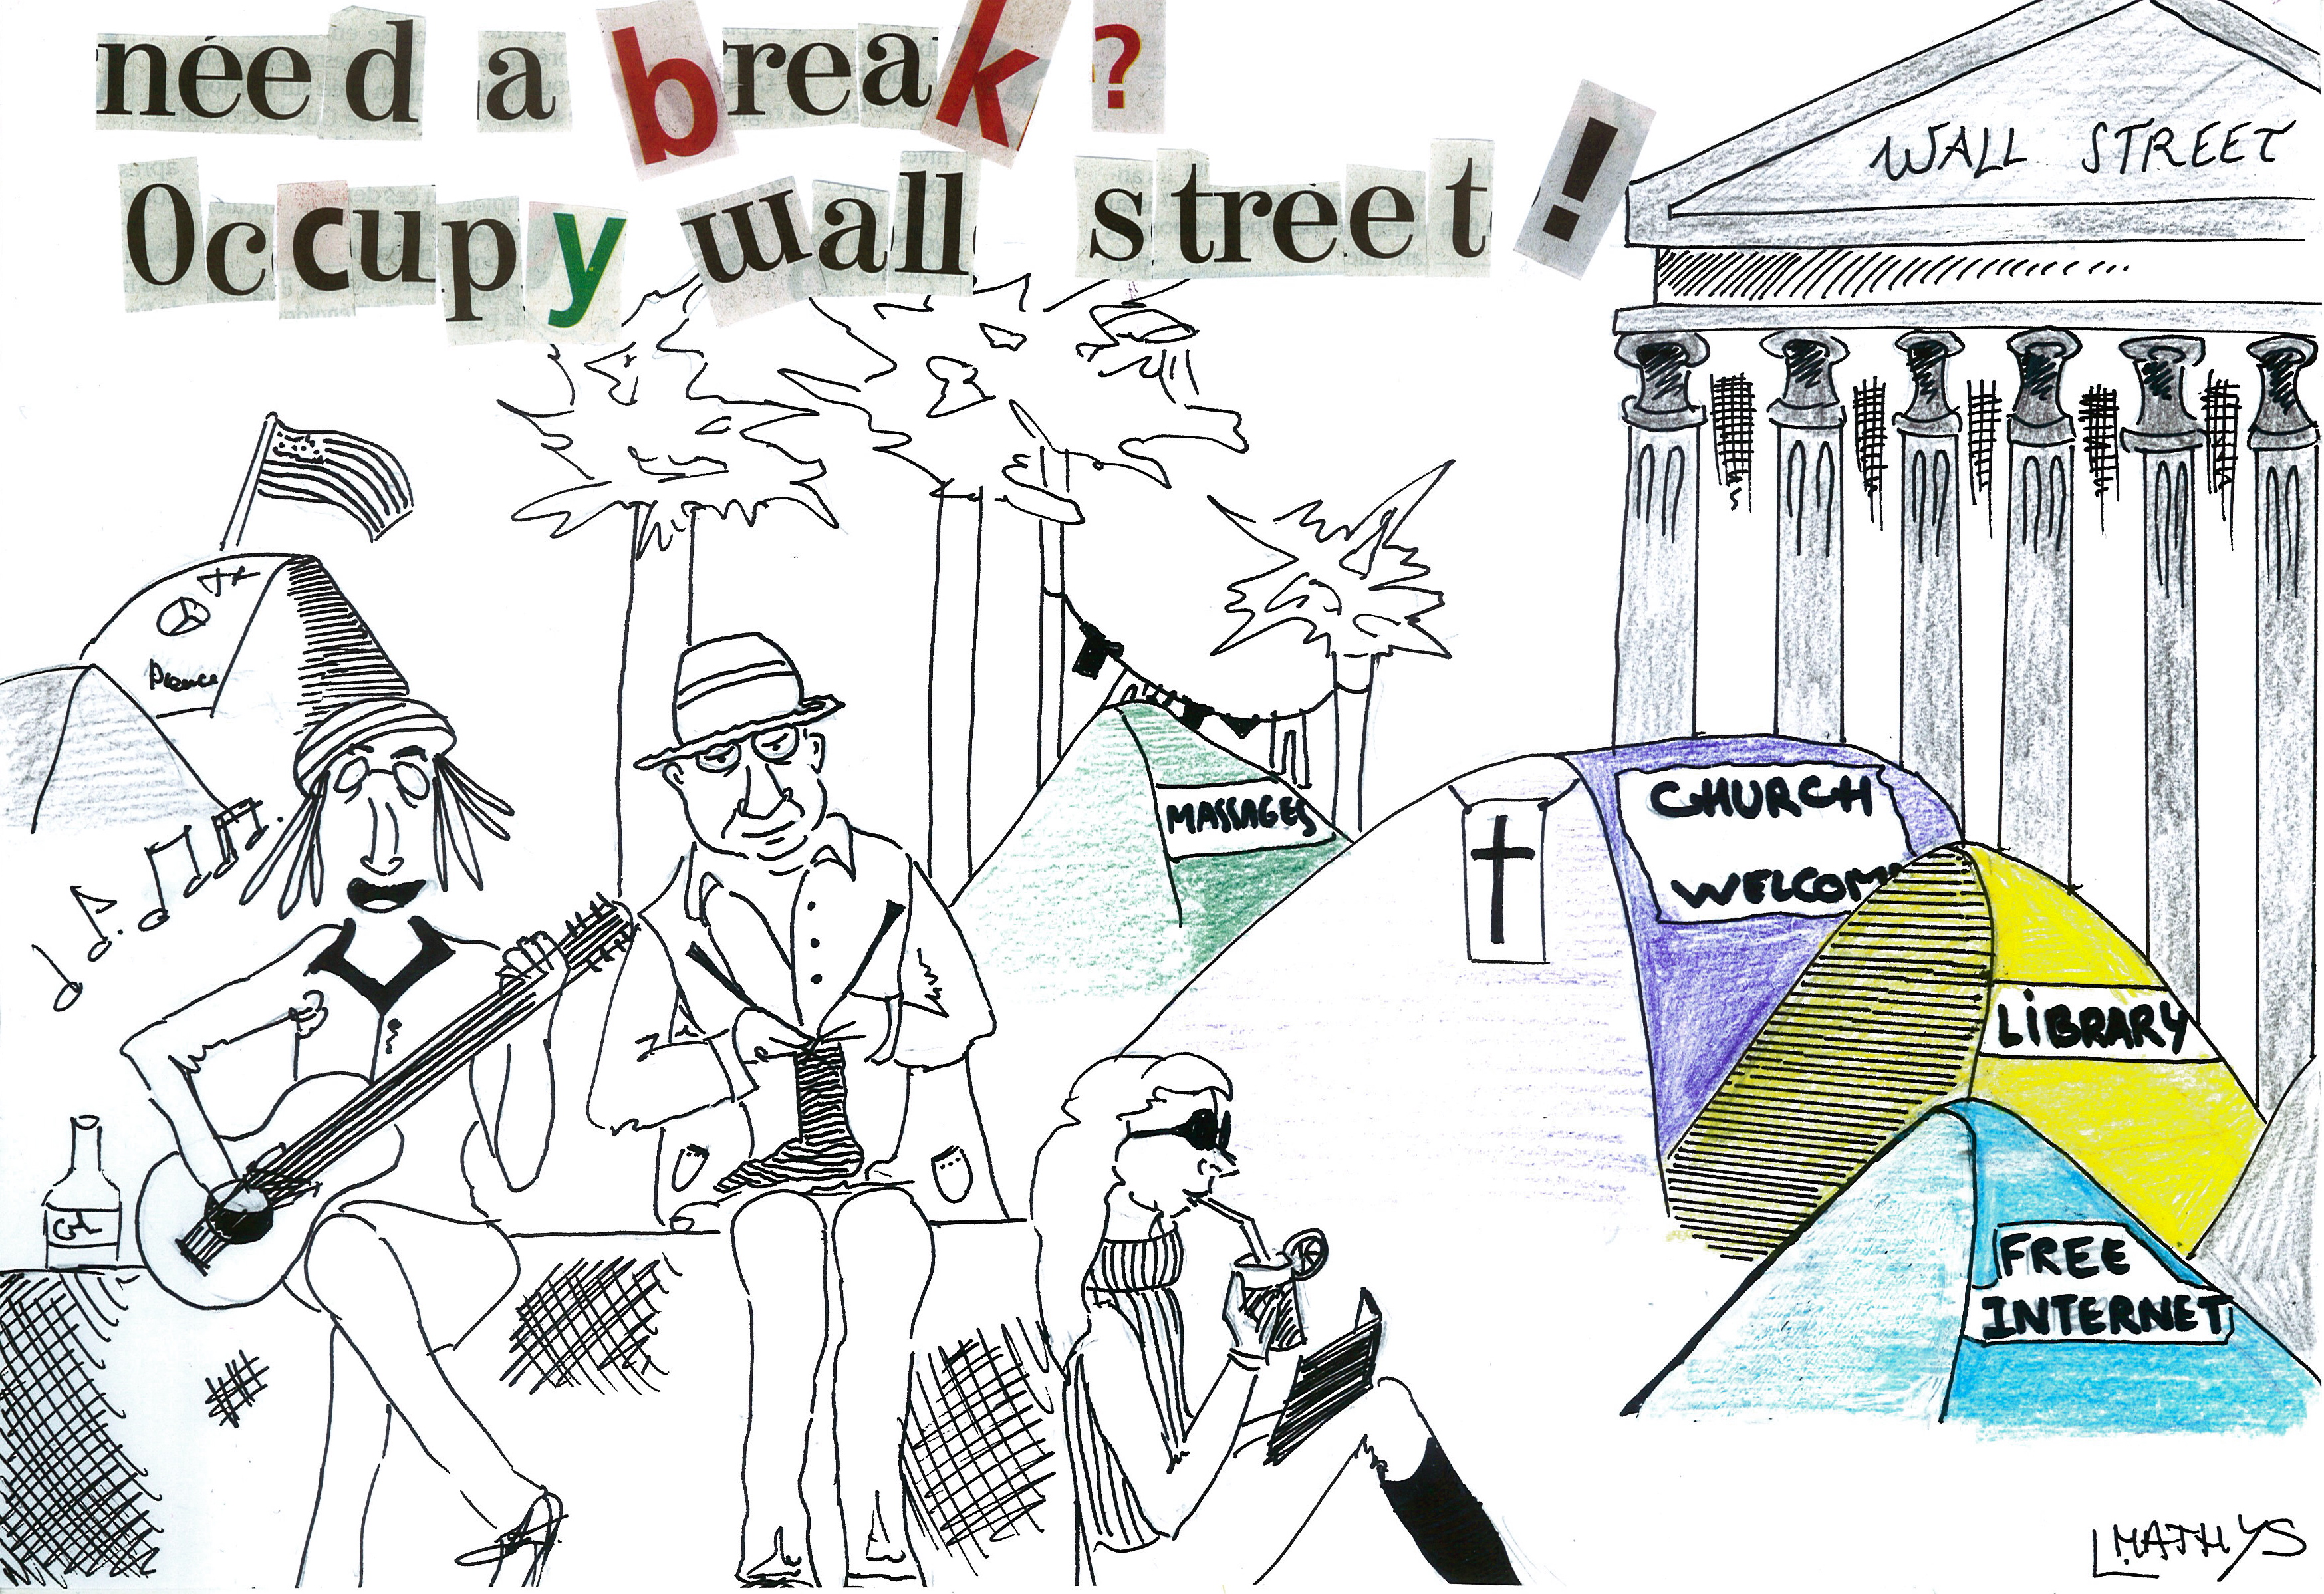 Need a break? Occupy Wall Street!